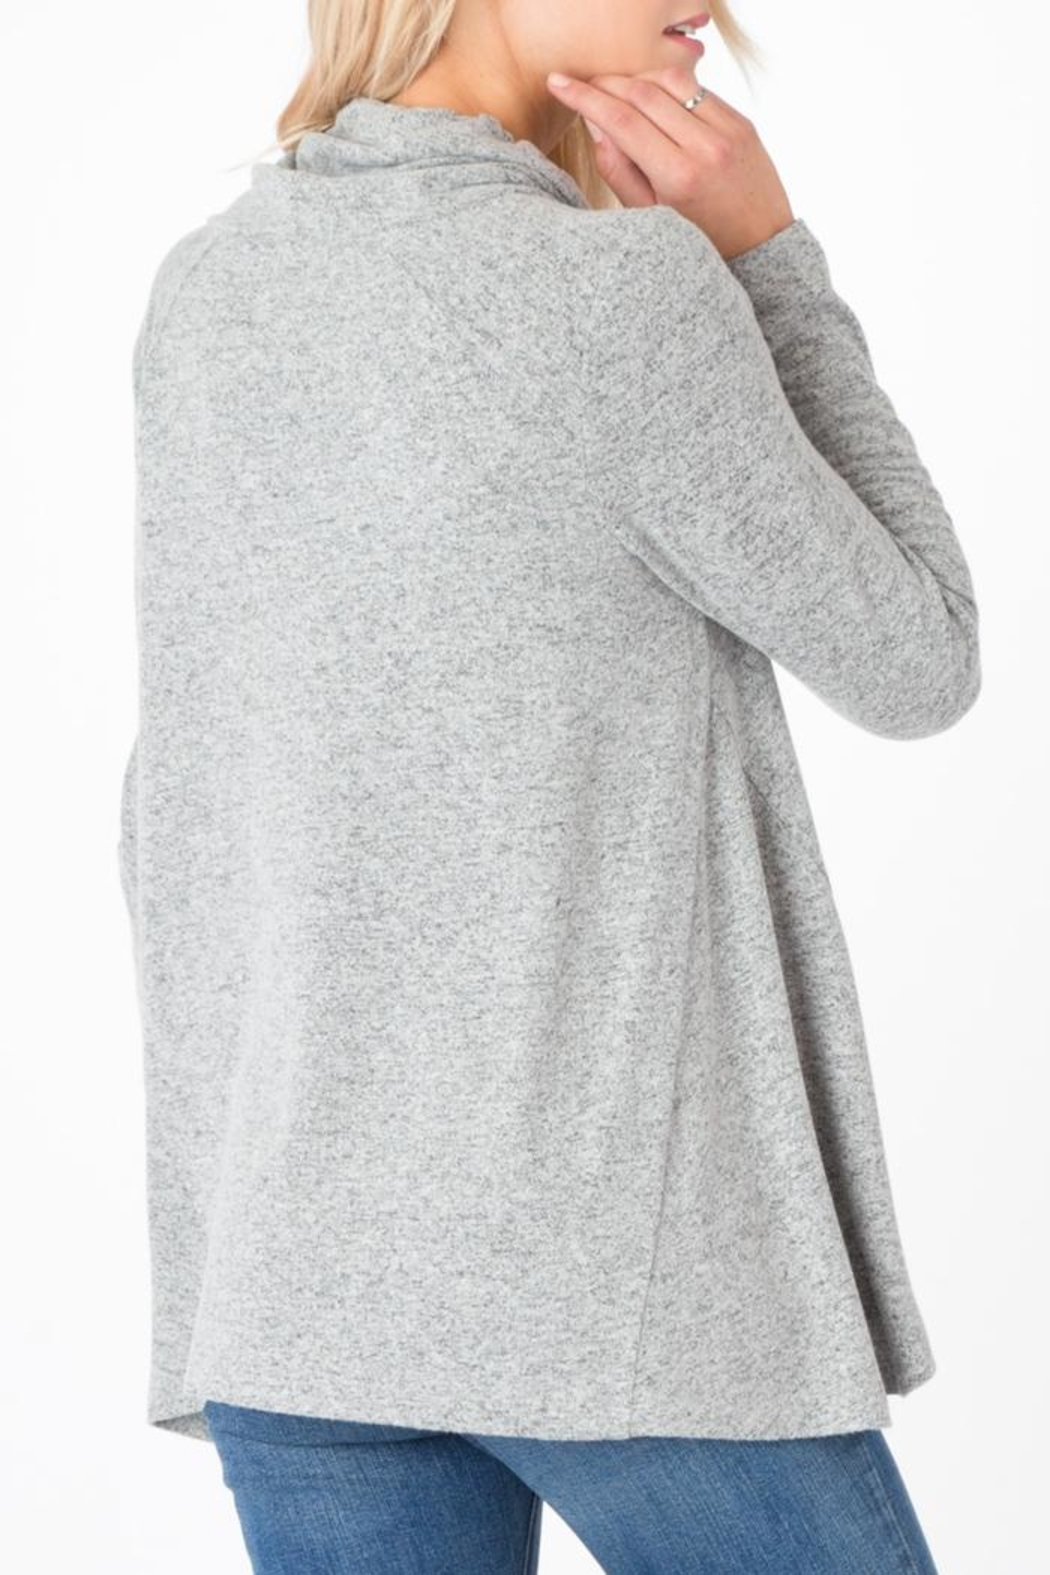 z supply Marled Cowl-Neck Sweater - Front Full Image